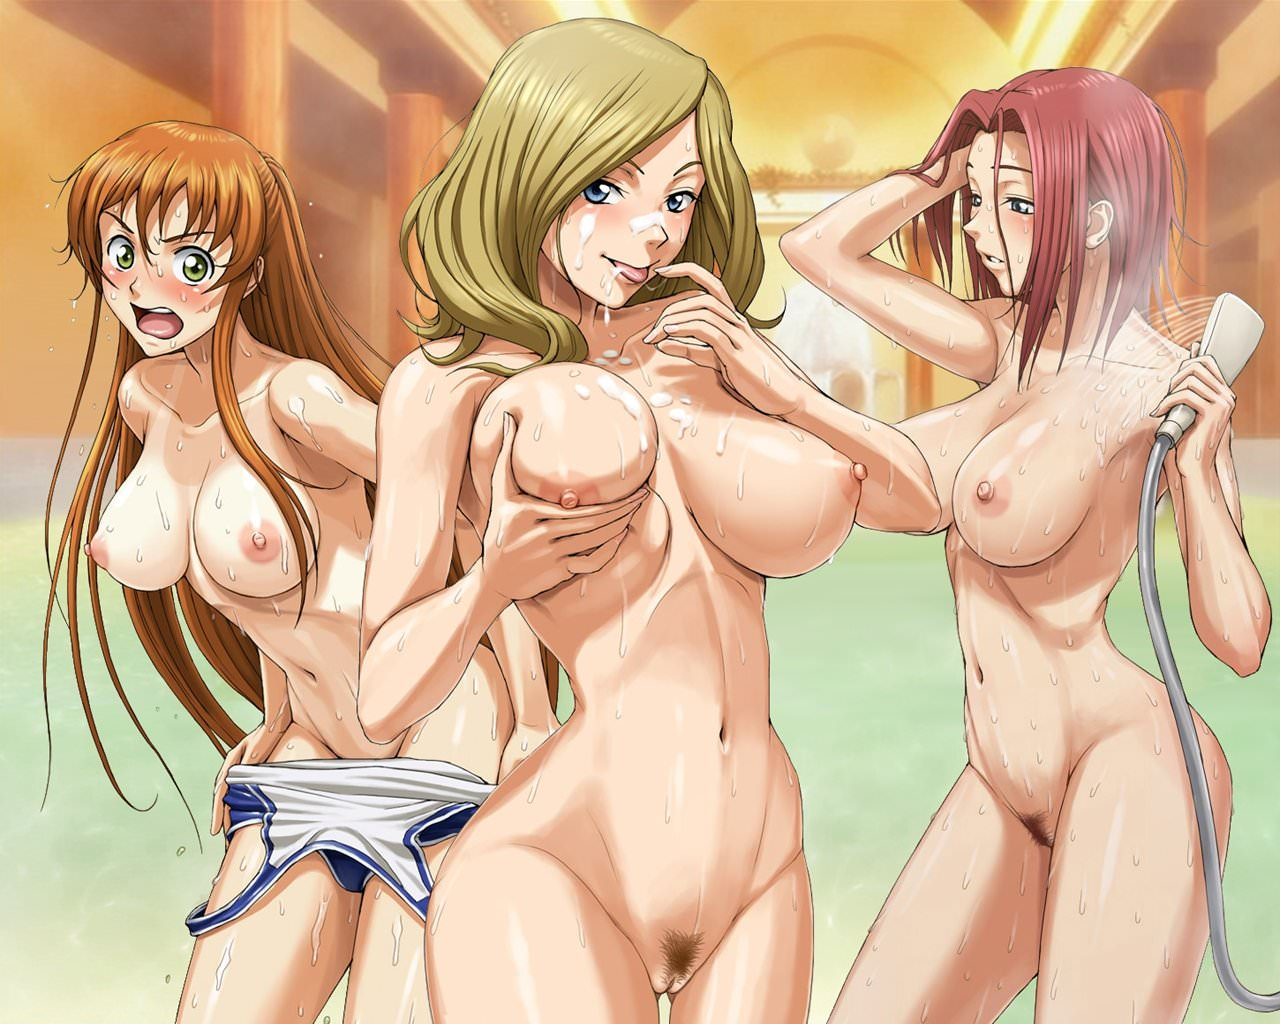 Sexy elfen big boobs anime lesbian naked videos